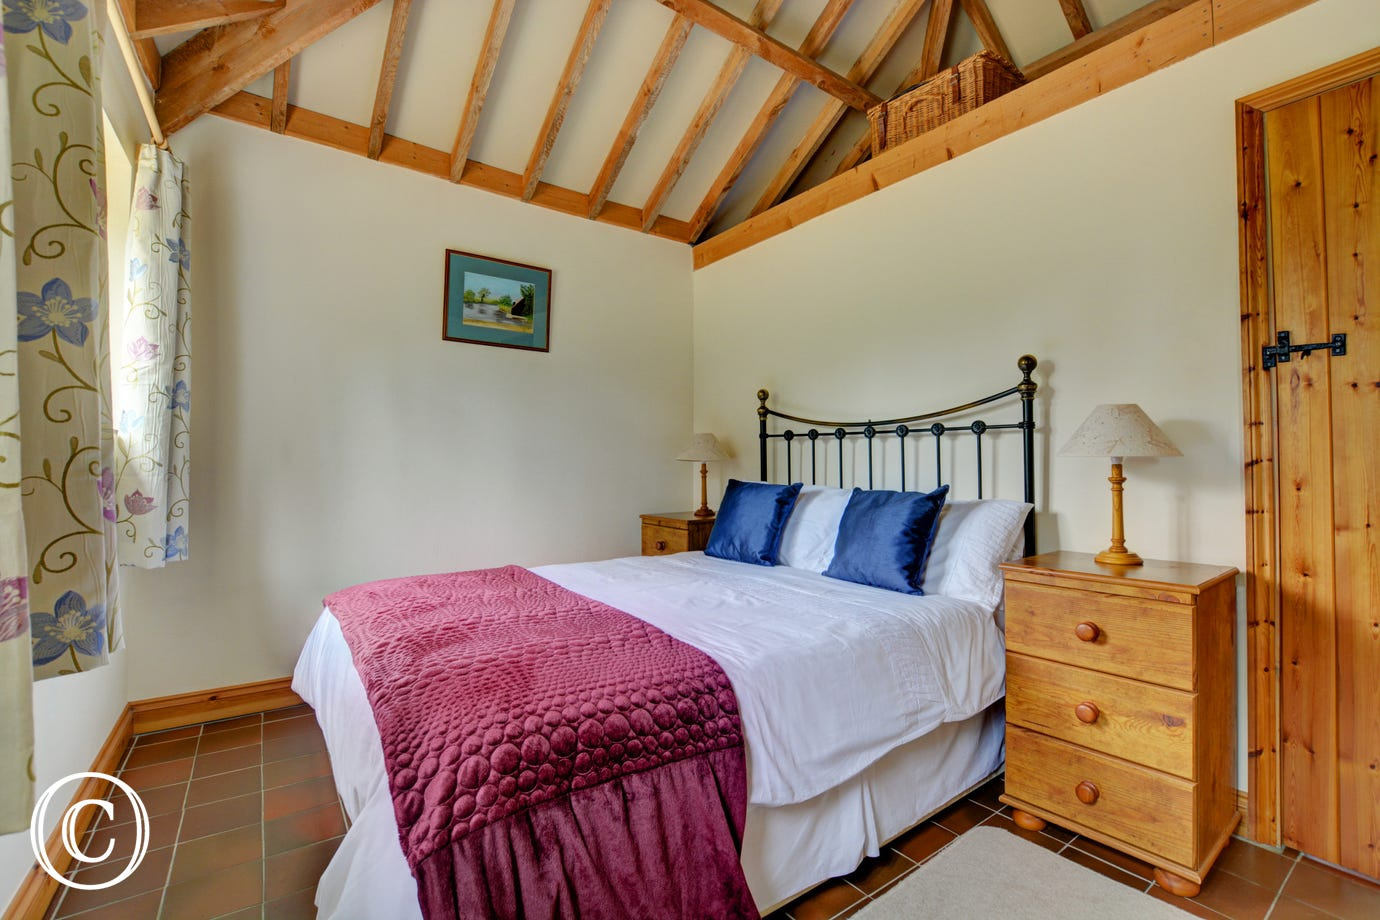 A double bedded room features an iron bedstead and pine furniture.